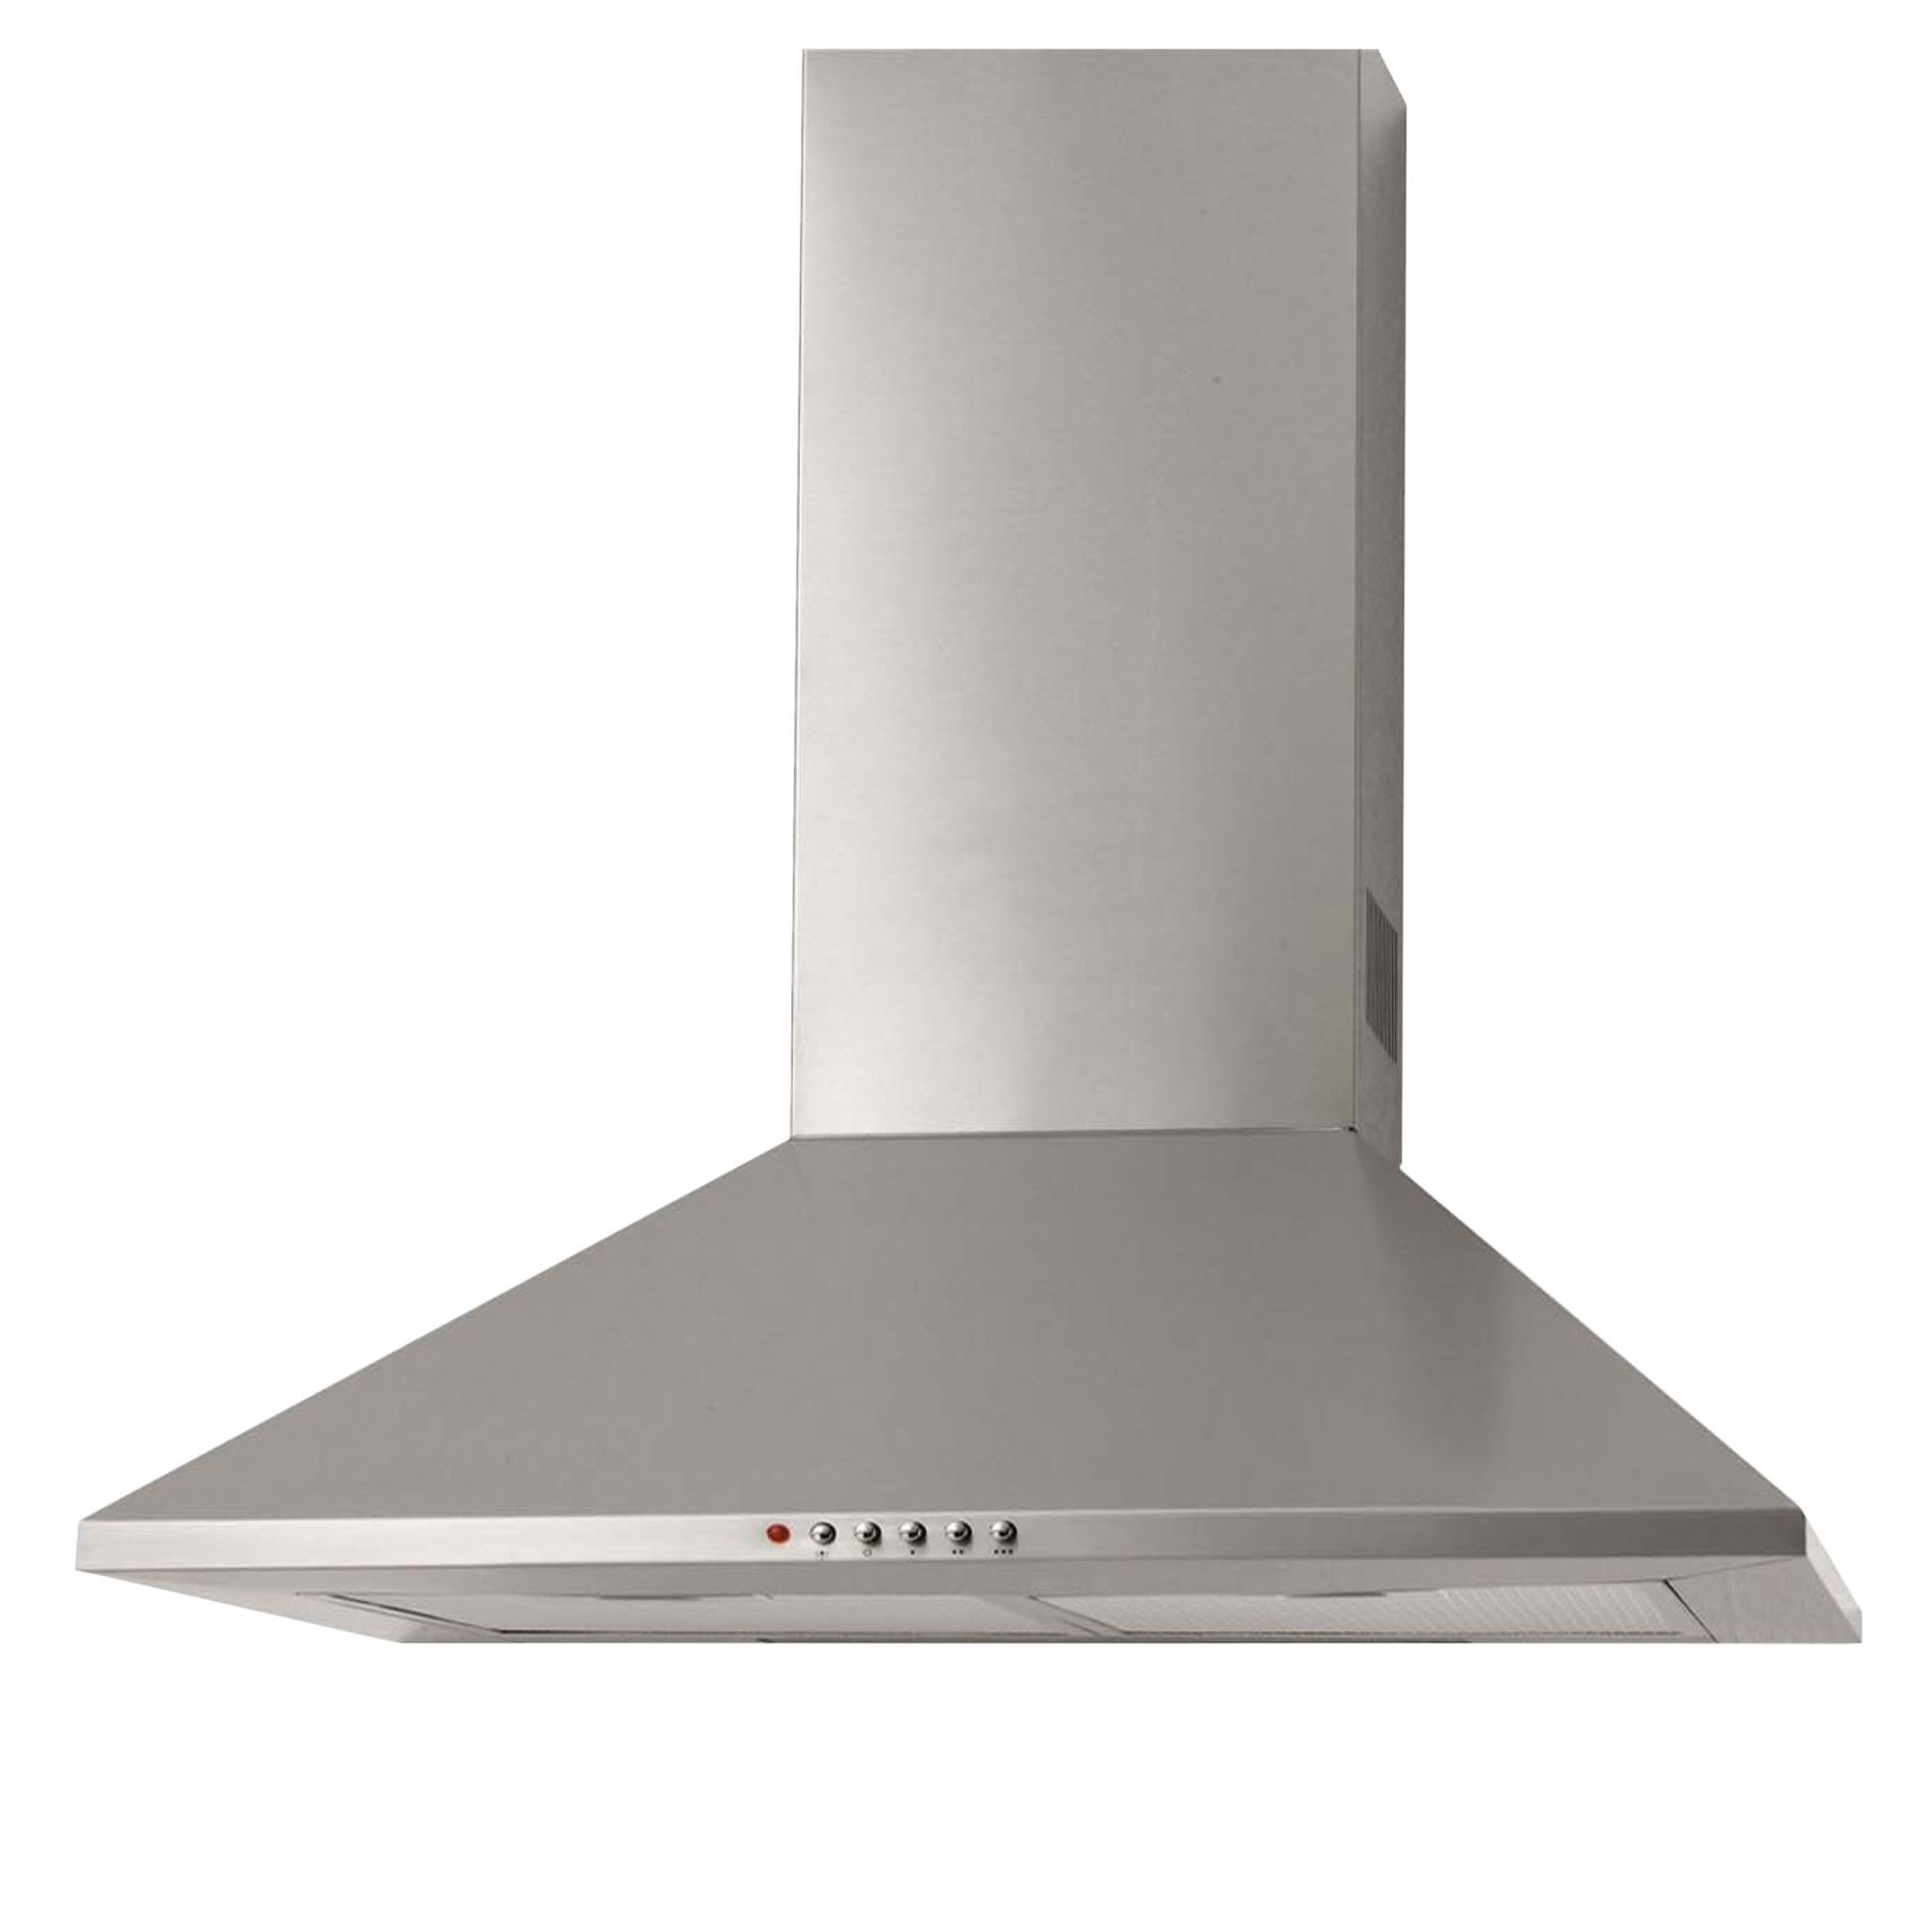 Cata Chk60ss Stainless Steel Chimney Cooker Hood W